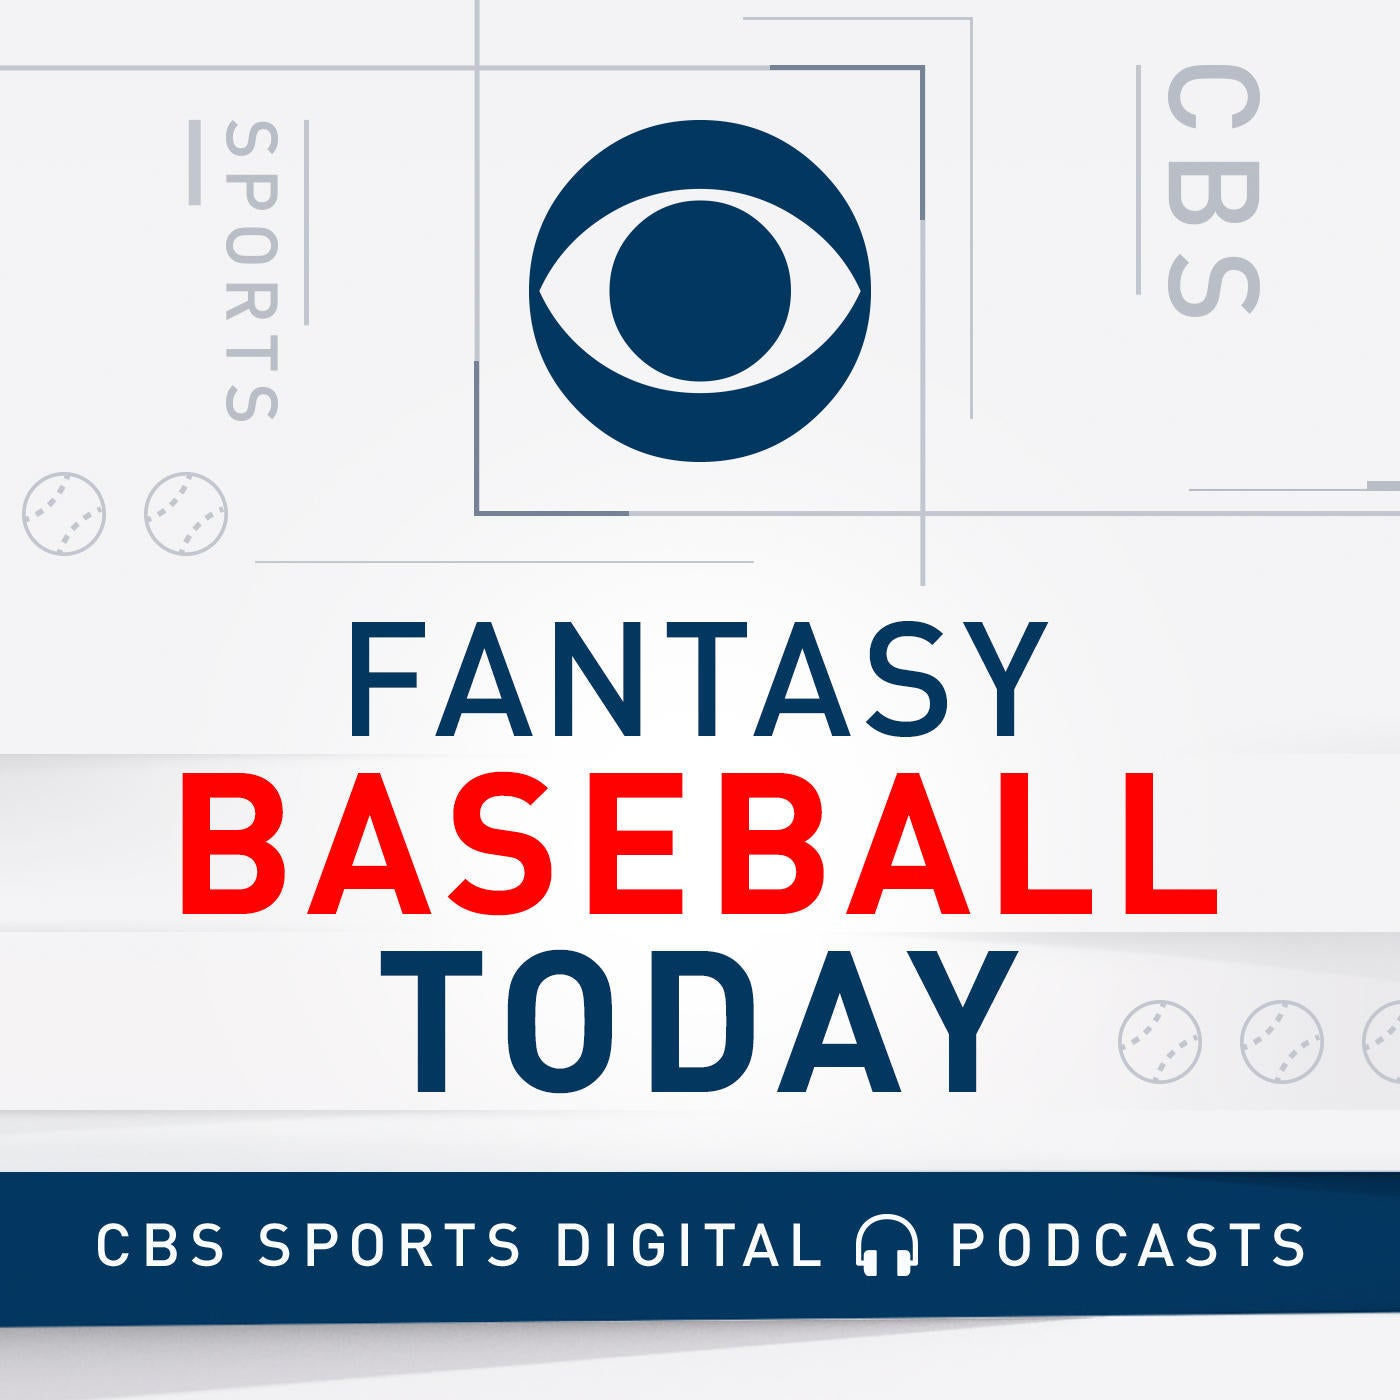 Podcast: Fantasy Baseball Today logo